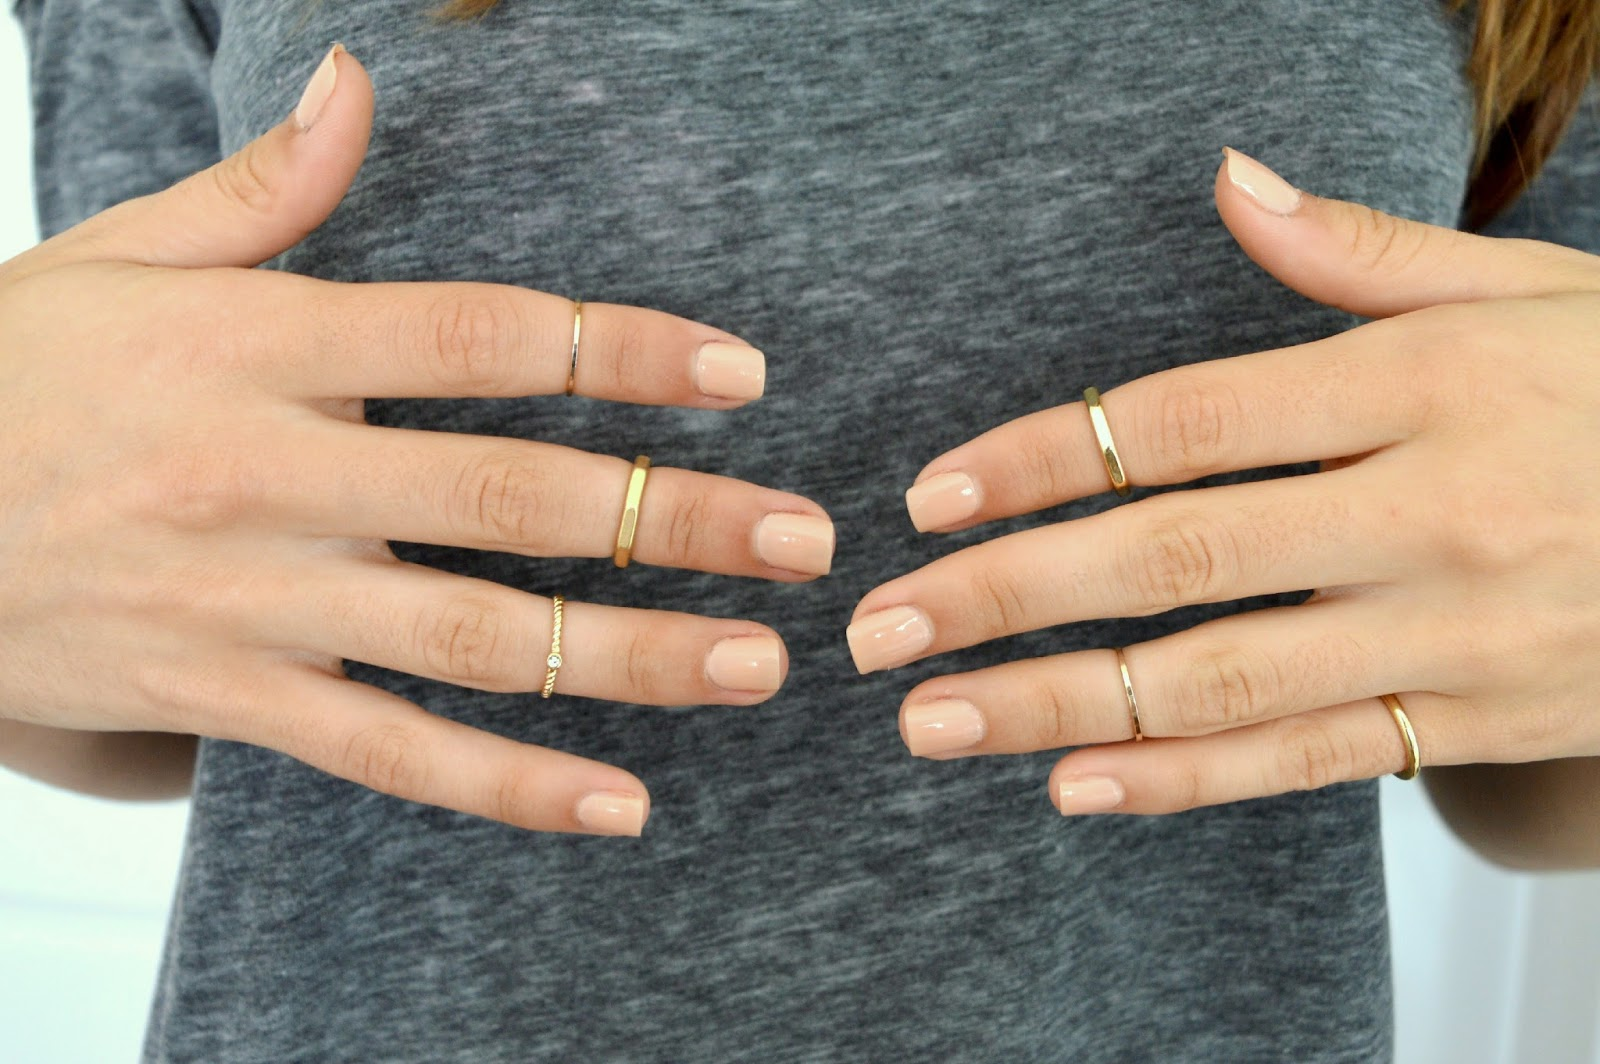 The Beauty Pier: MY MANNEQUIN HANDS SHADE